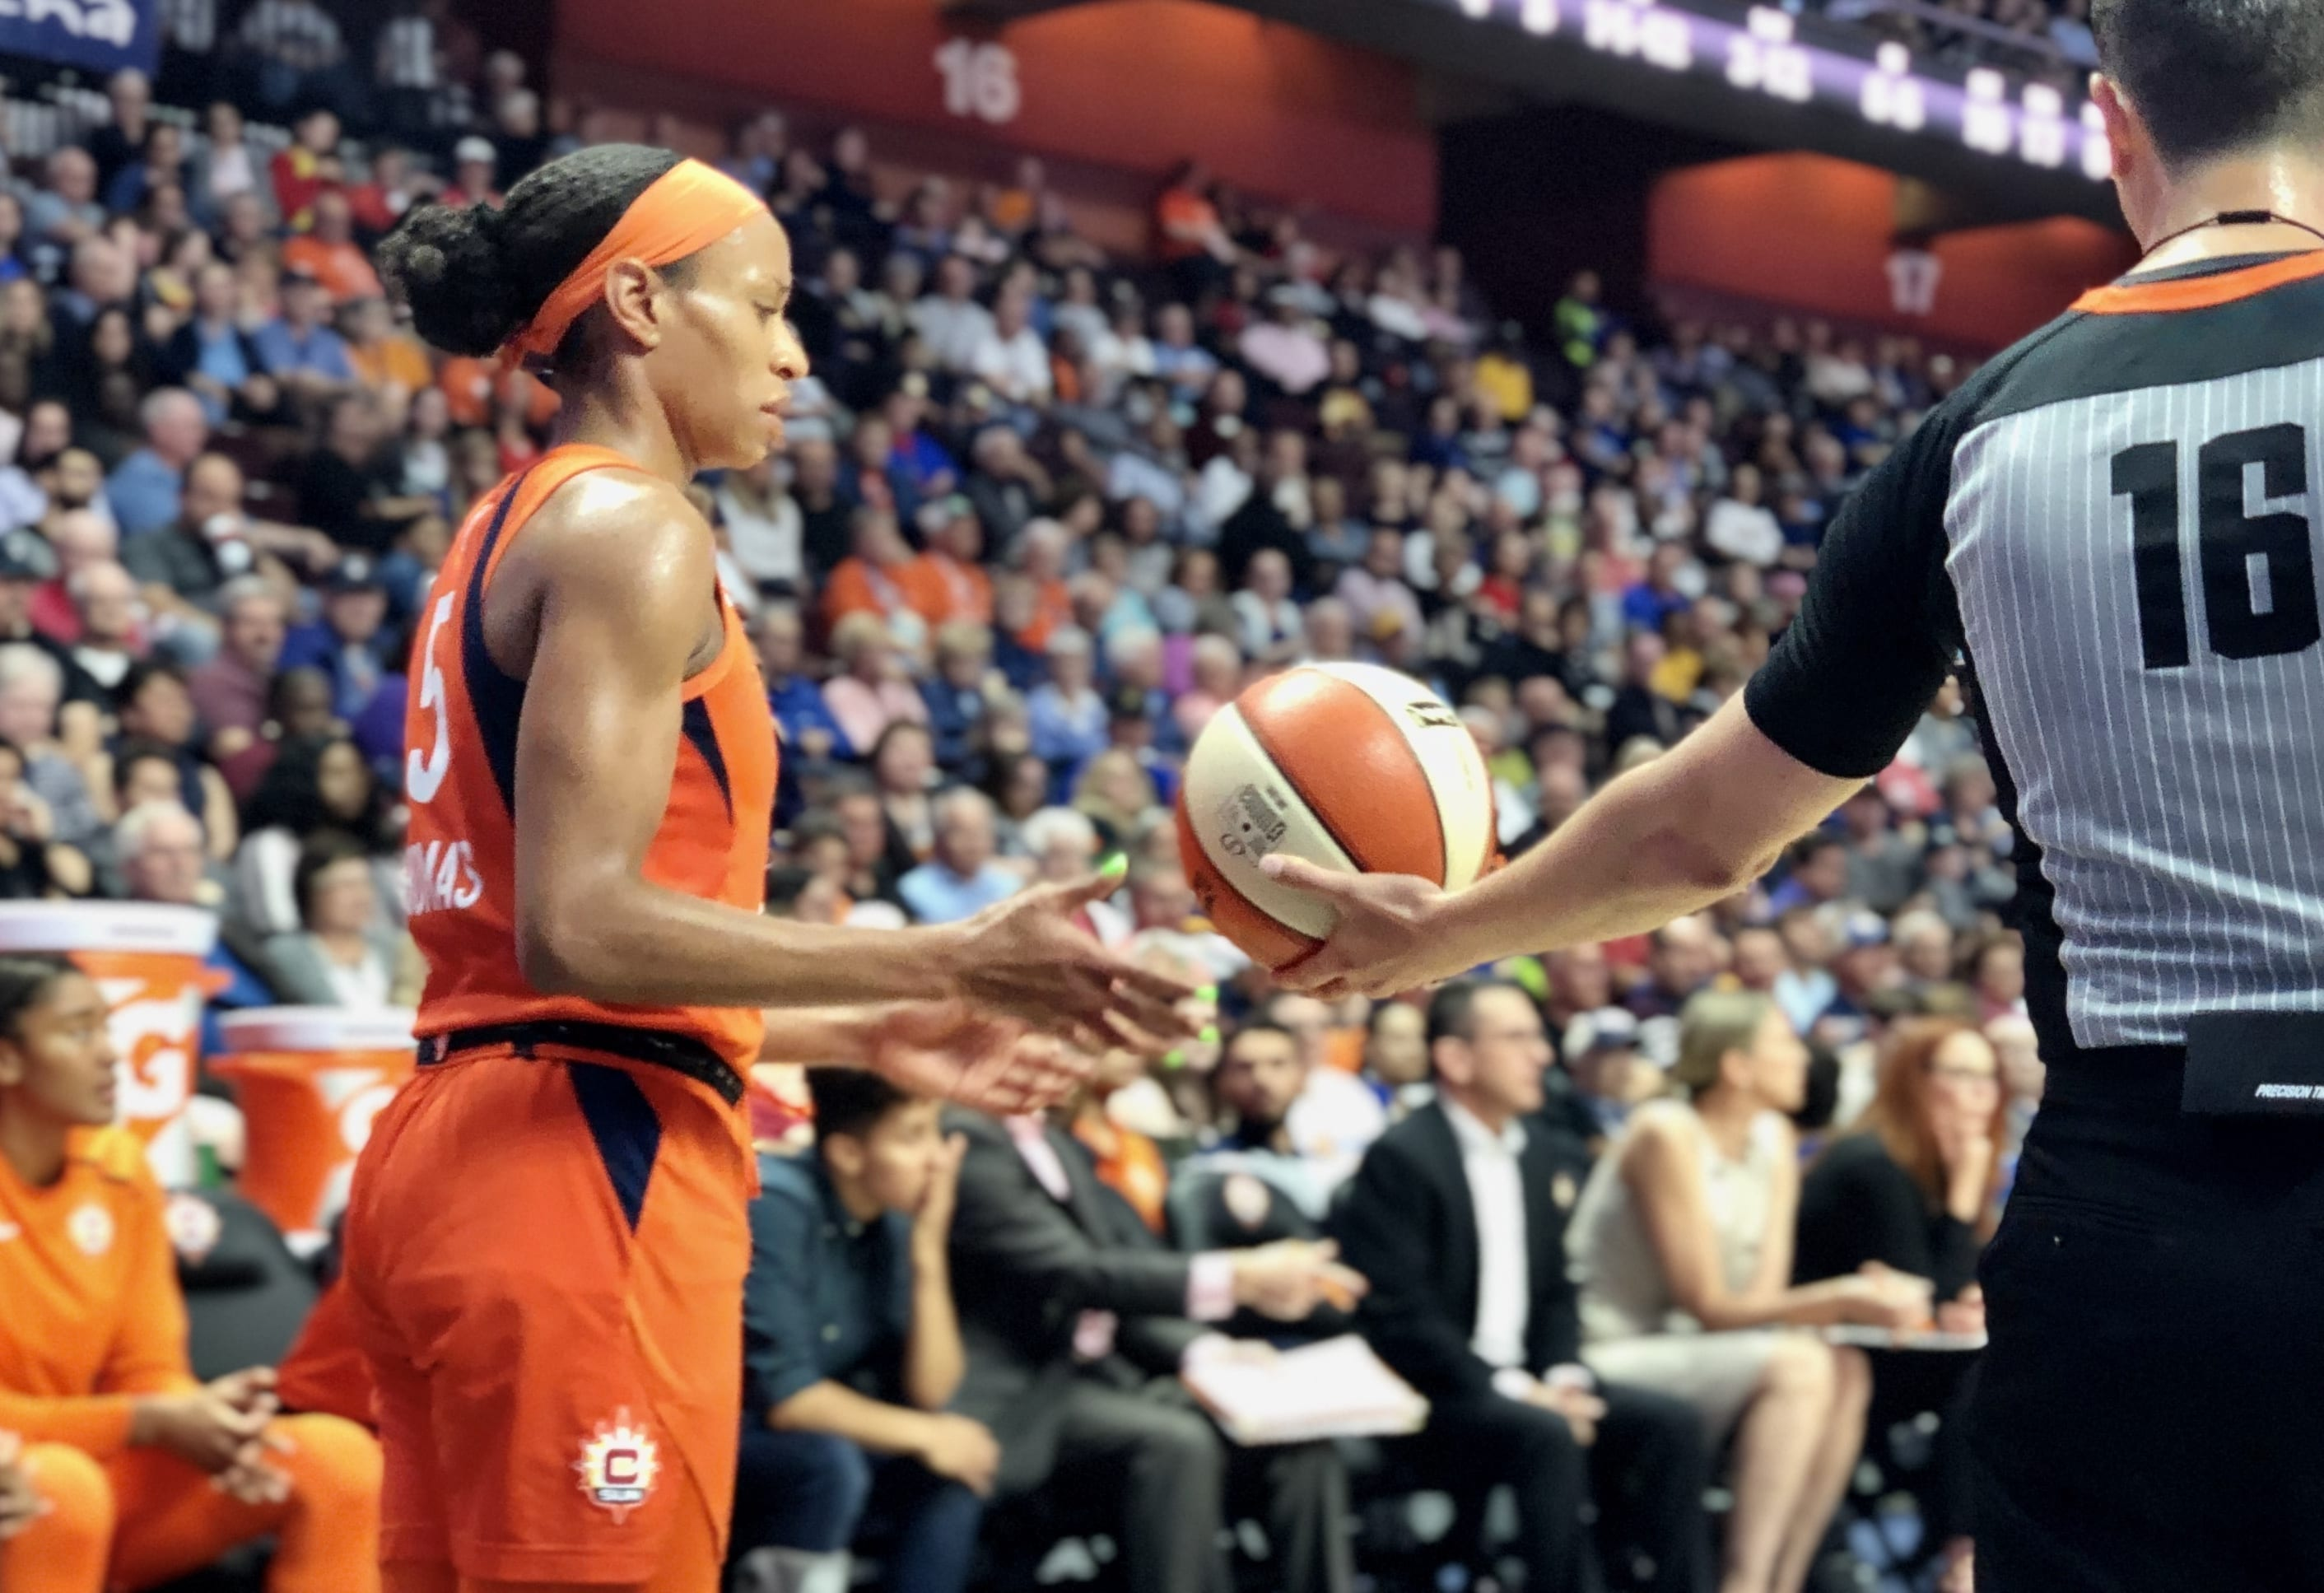 The sports landscape aligns perfectly for the WNBA to launch itself into major American sports conversations, and hopefully the league takes full advantage.